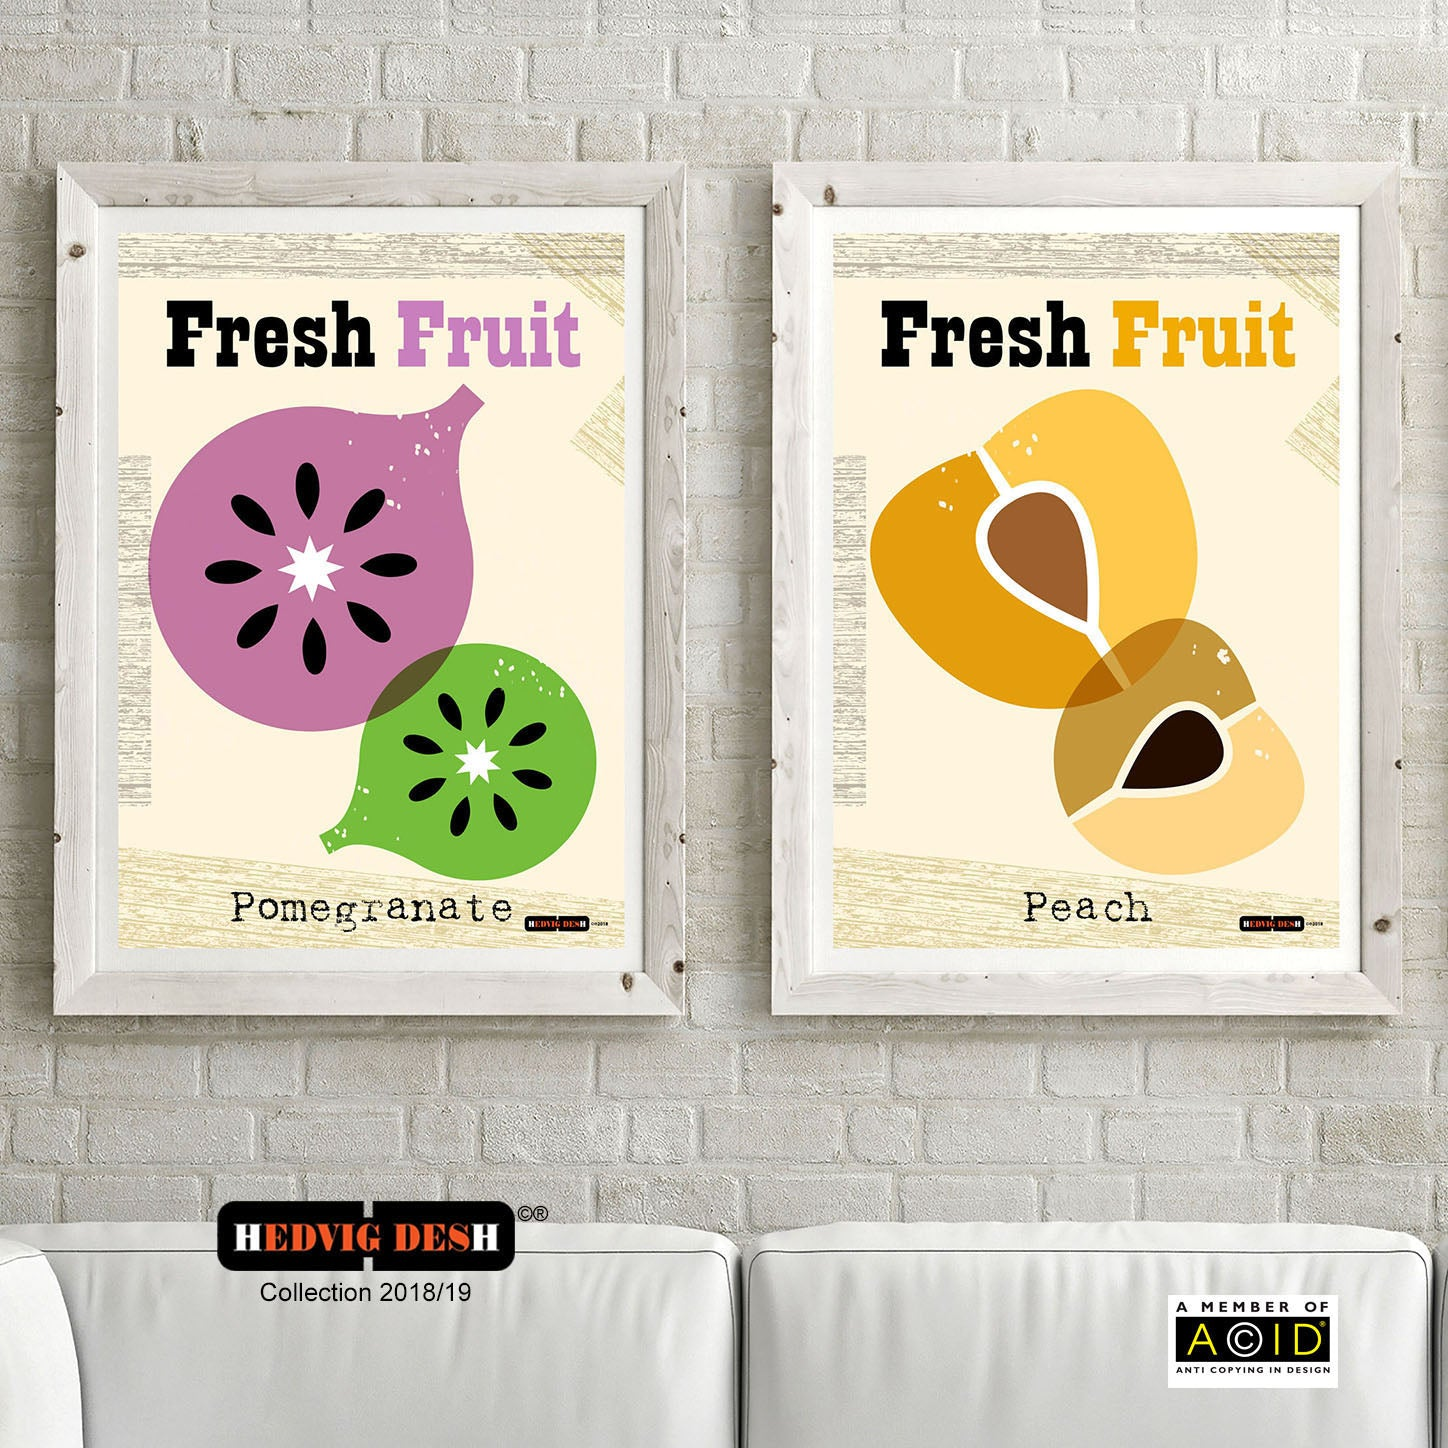 POMEGRANATE & PEACH HEDVIG DESH mid century Scandinavian fruit prints kitchen Nordic illustration gallery art - 'Unframed'